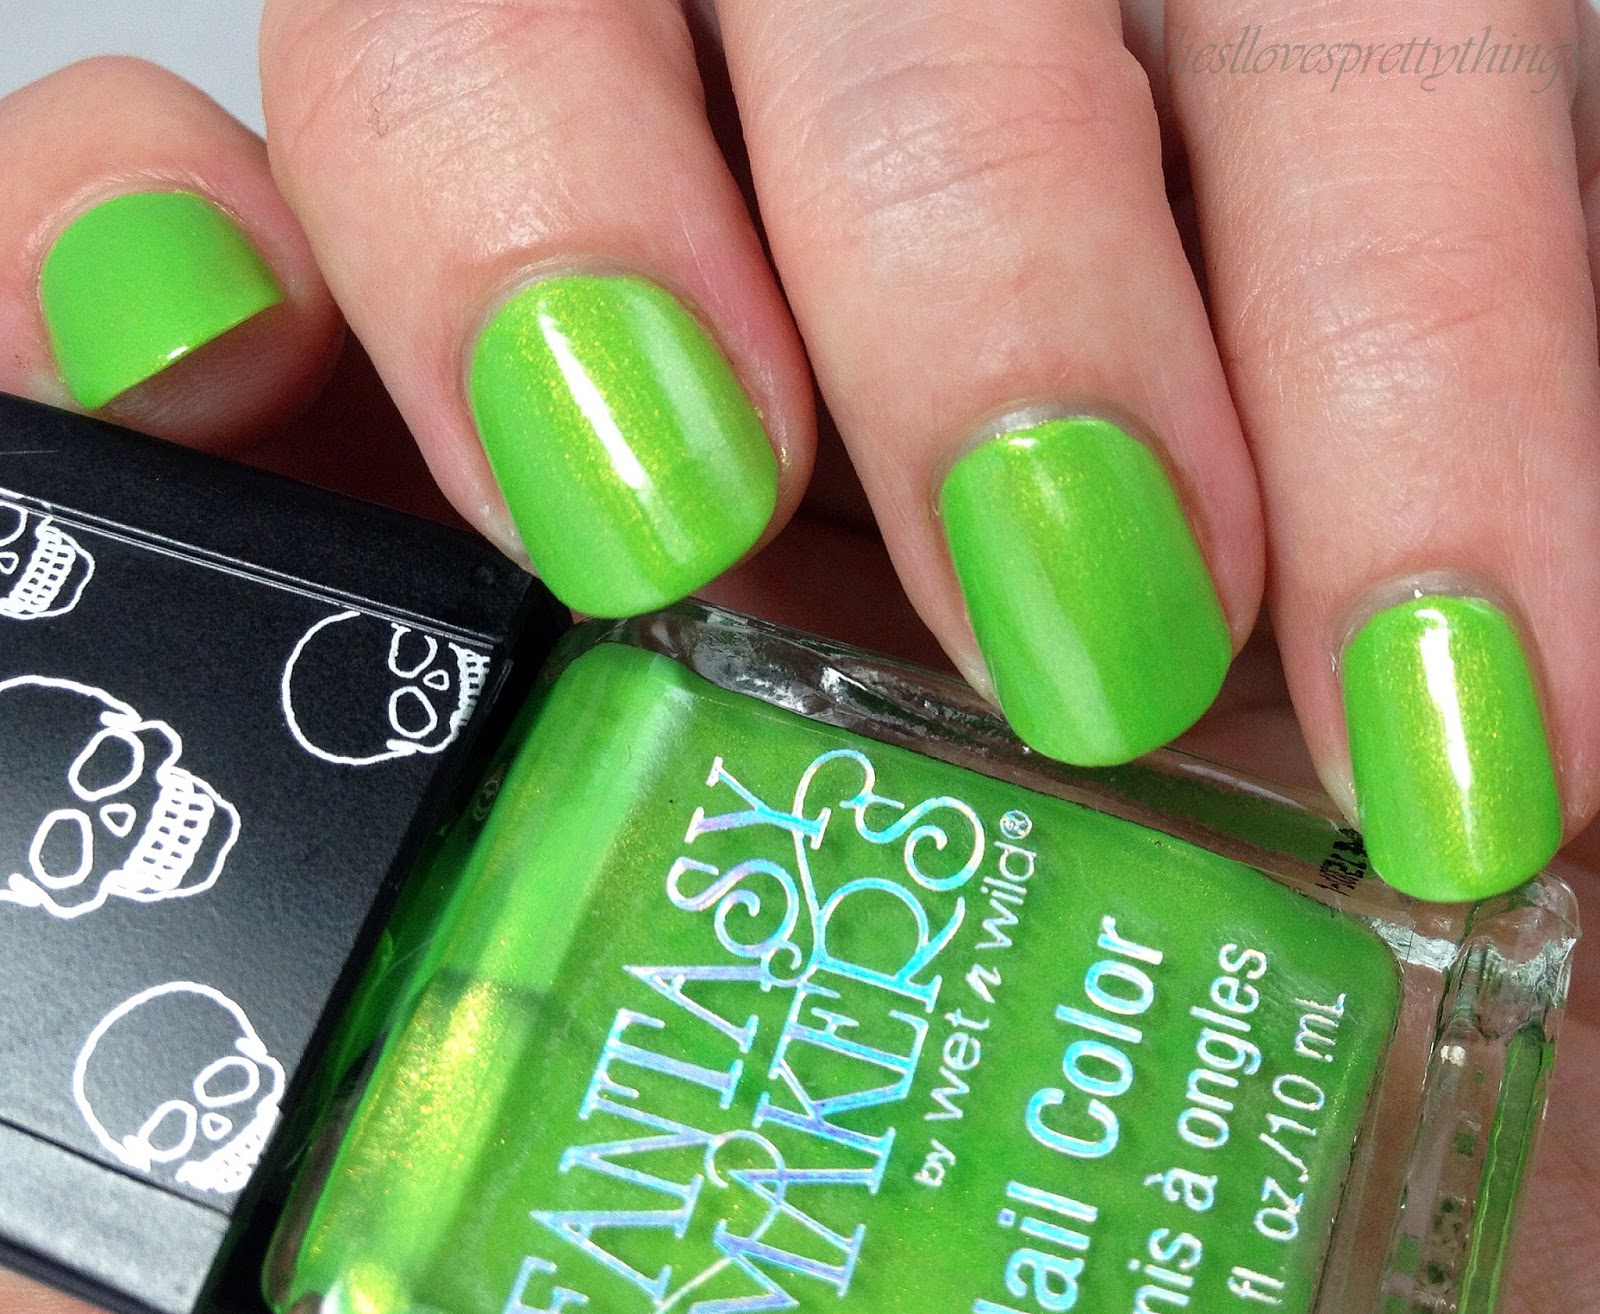 WetnWild Fantasy Makers 2014 Roach Busters swatch and review